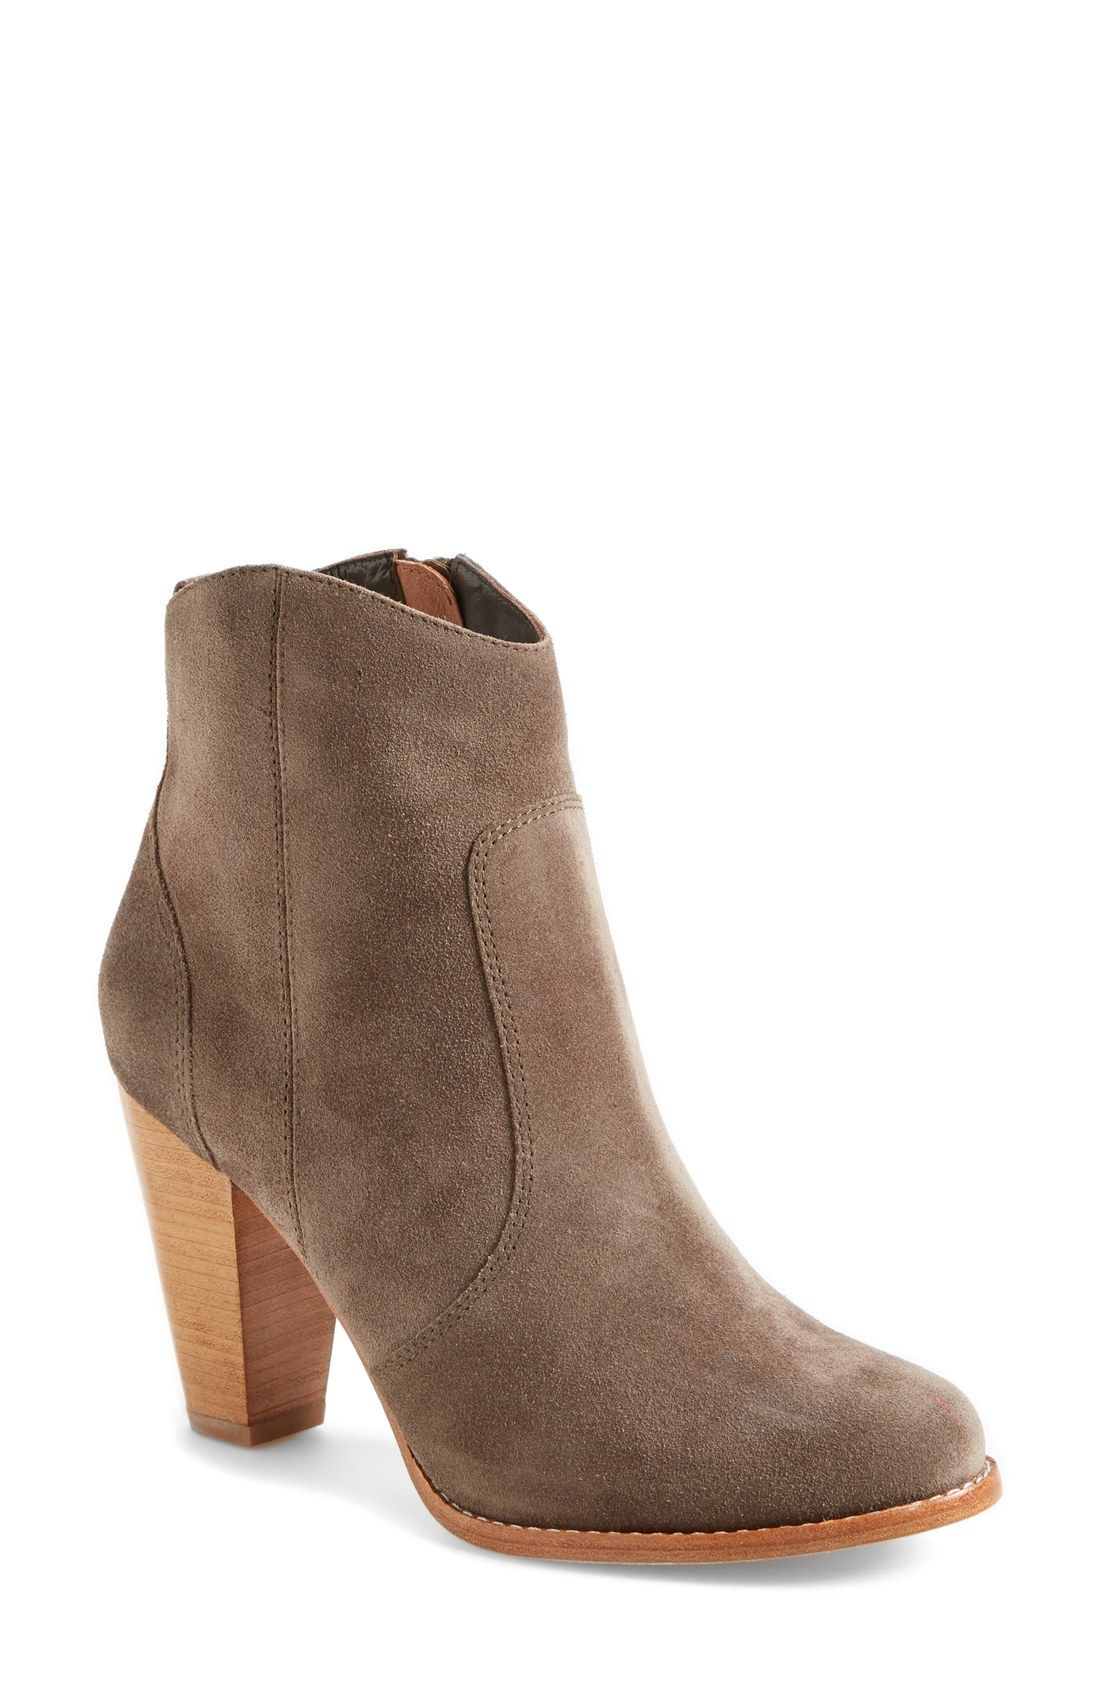 Joie Dalton Leather Ankle Boots new styles discount new styles sale popular tumblr brand new unisex for sale vxOs0